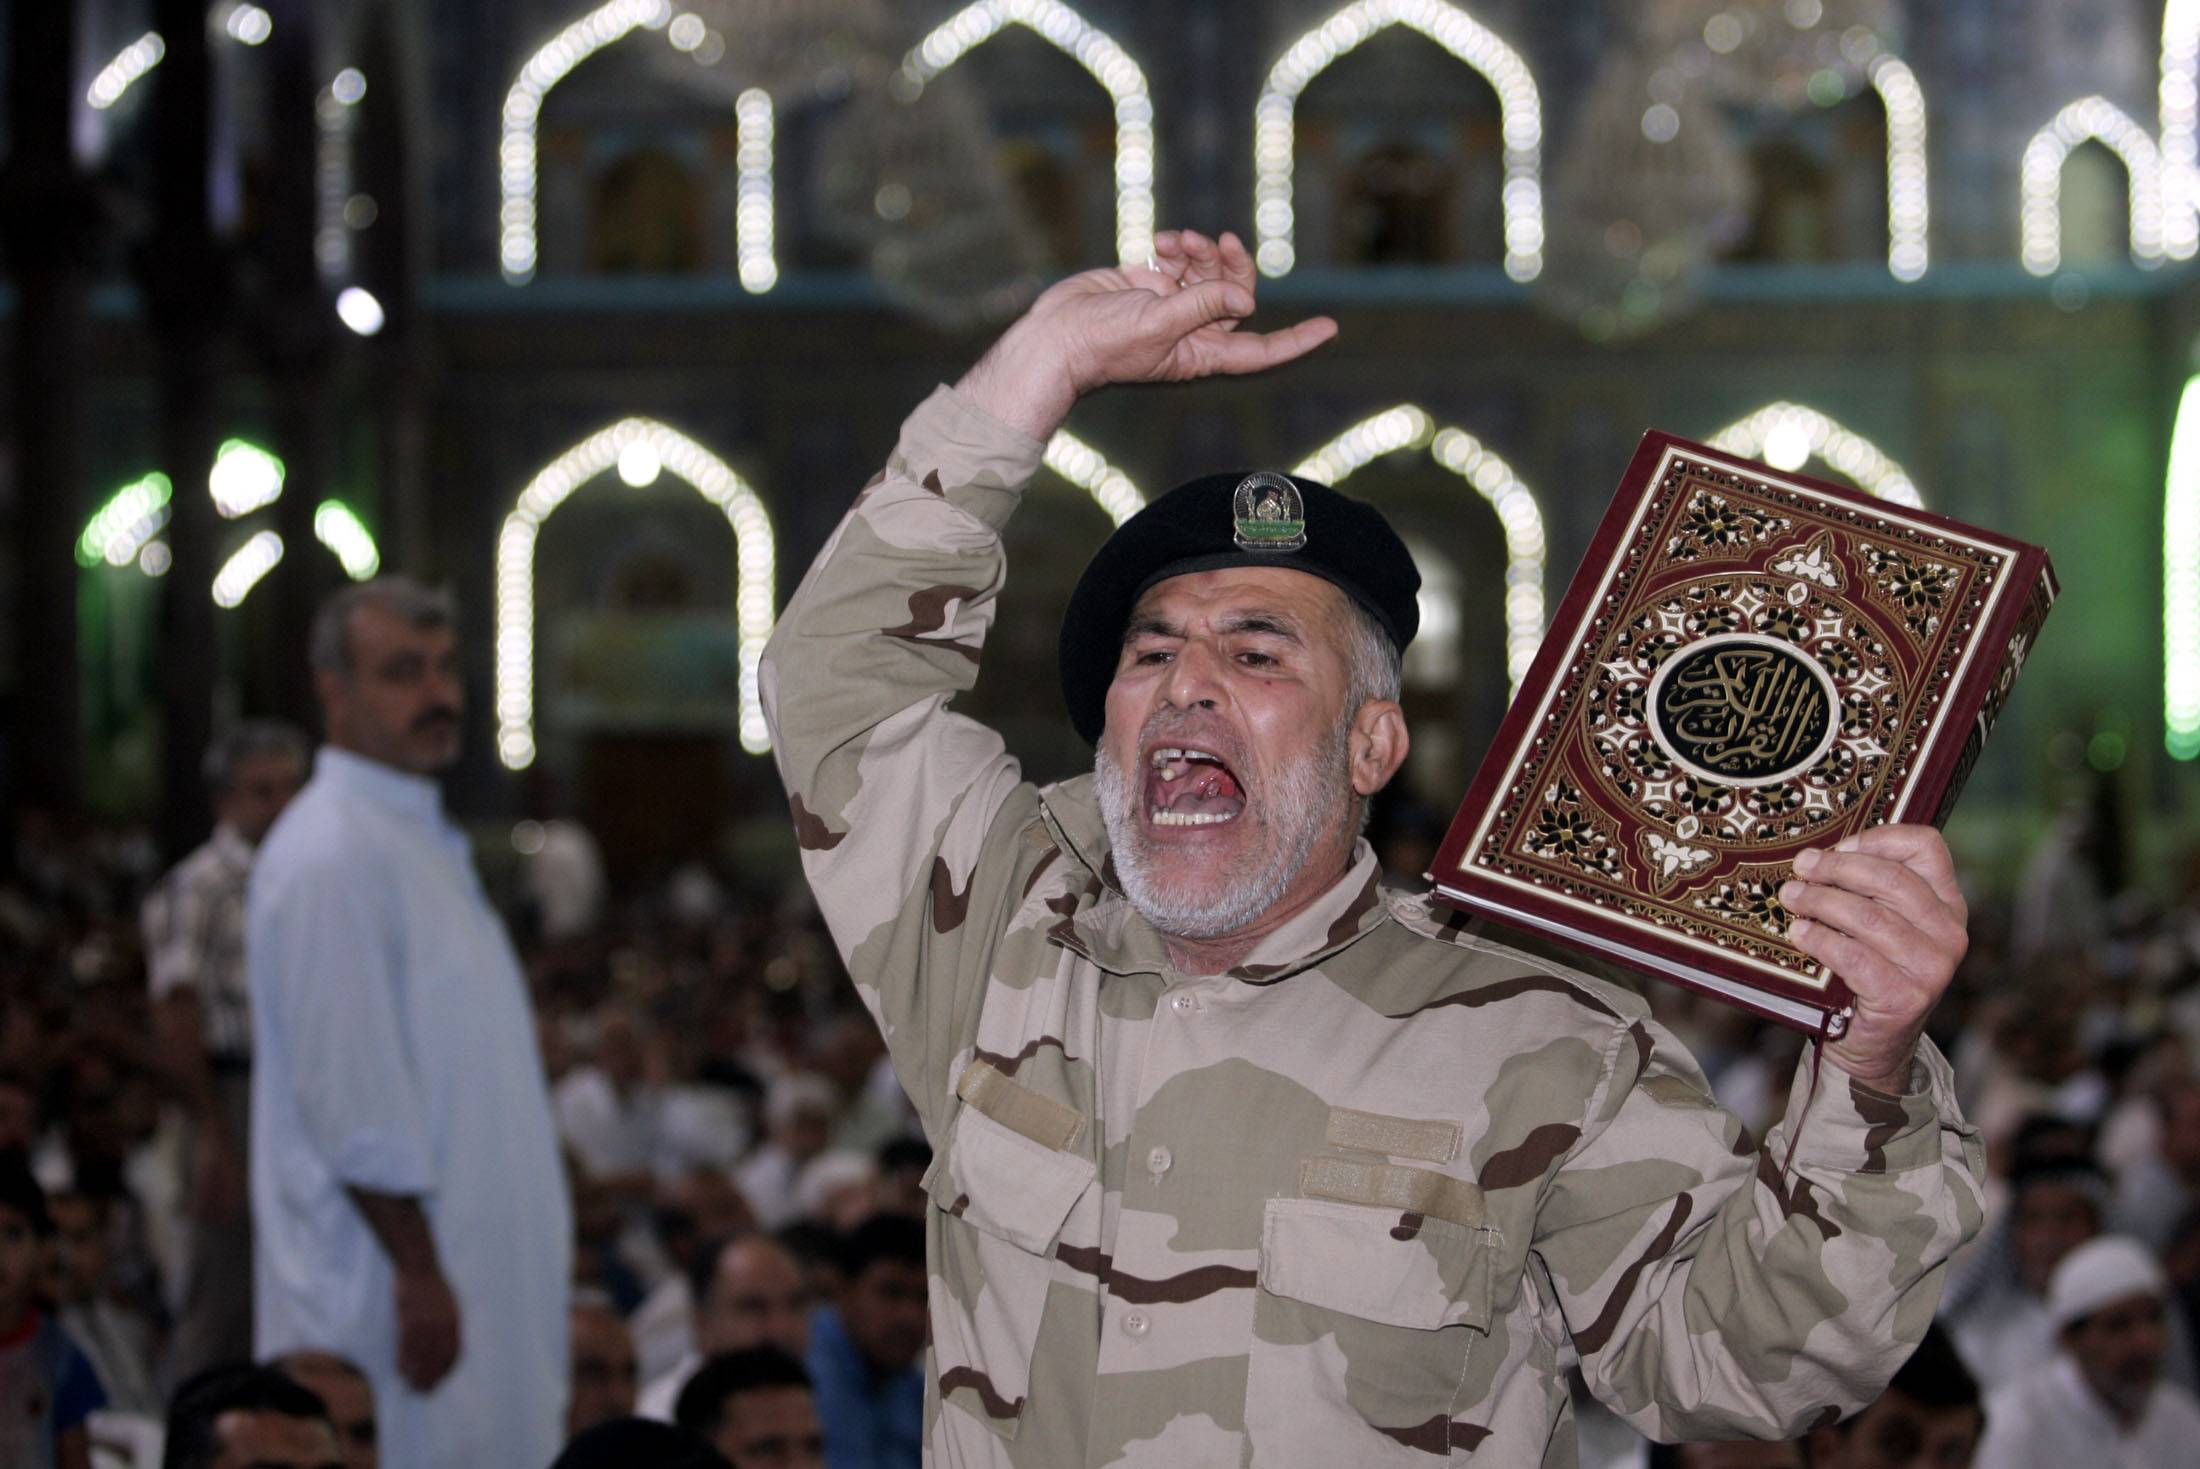 An Iraqi Shiite fighter chants slogans against the al-Qaida-inspired Islamic State group during Friday prayers in the Shiite holy city of Karbala, 50 miles south of Baghdad. The Sunni militant blitz led by the Islamic State extremist group has effectively cleaved the country along ethnic and sectarian lines -- the swath of militant-held Sunni areas, the Shiite-majority south and center ruled by the Shiite-led government in Baghdad and the Kurdish north.